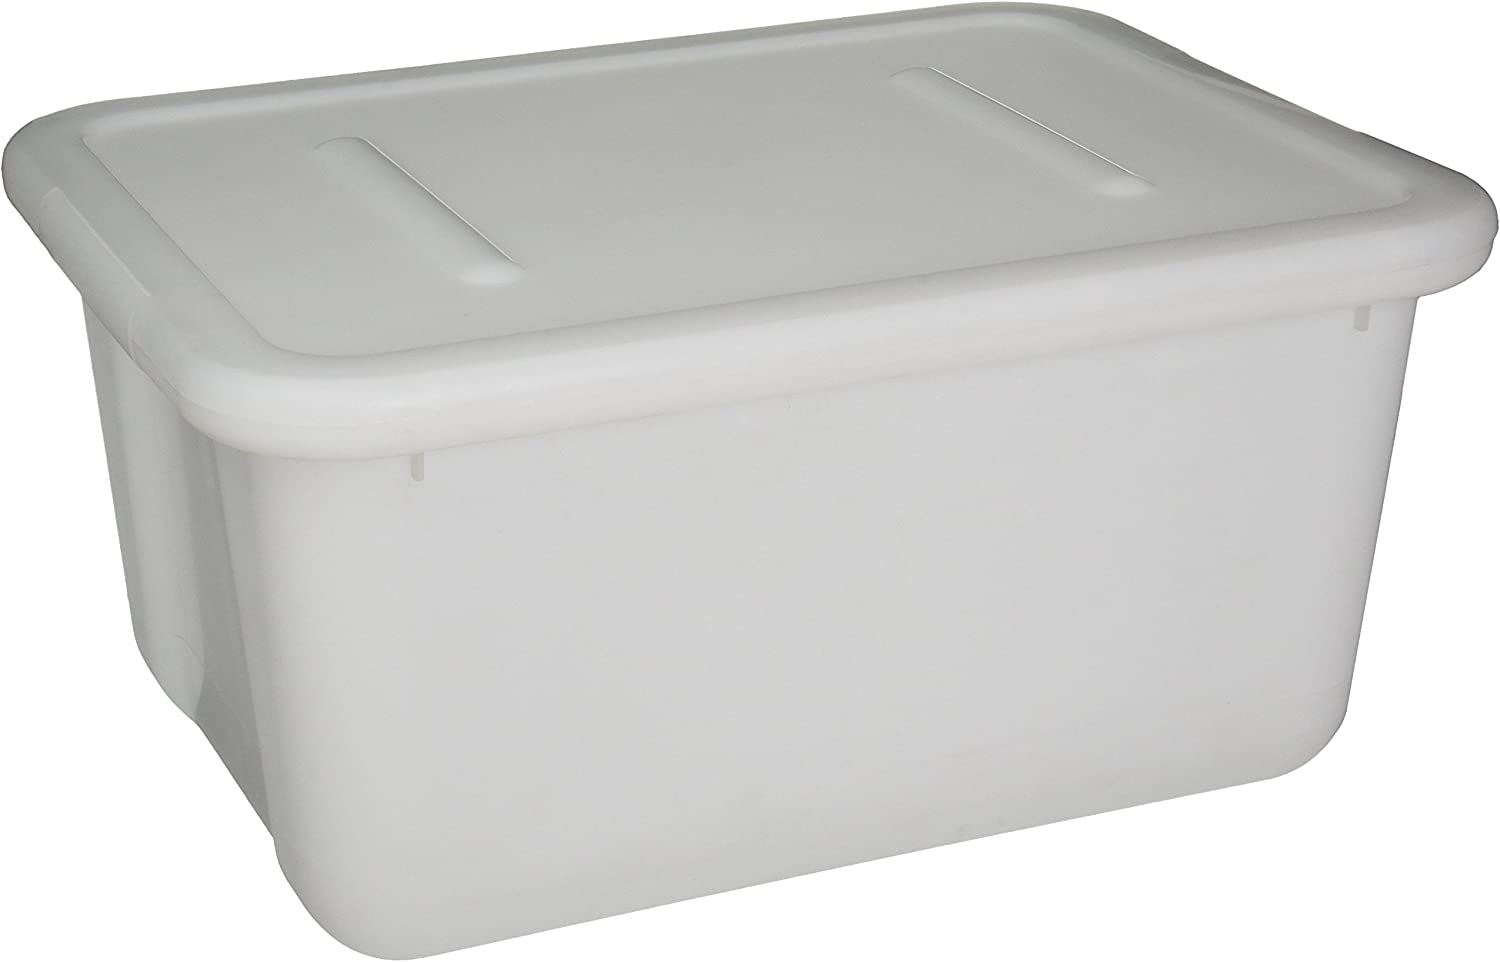 School Specialty 276871 Storage Tote with Lid, 15 Quart, 7-1 2  x 11-3 4  x 15-1 2 , Translucent